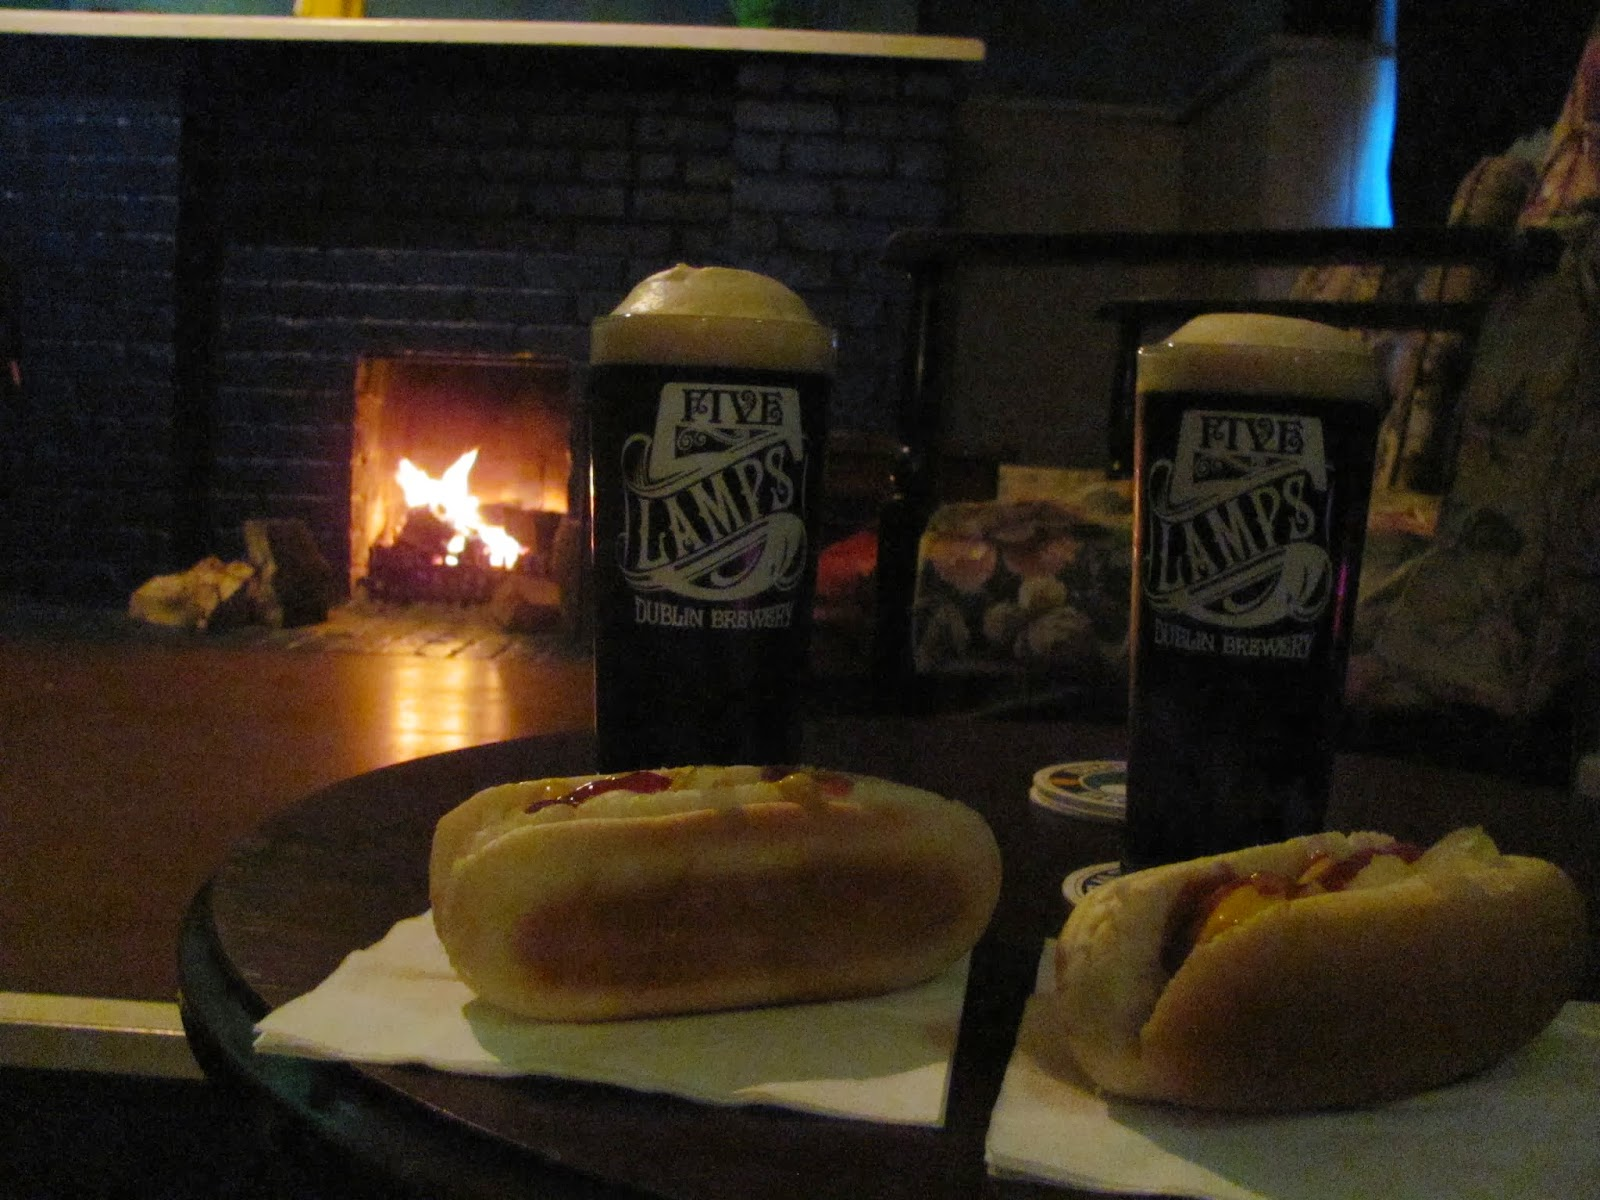 Five Lamps, Hot Dogs, and a Roaring Fire at Beerhouse in Dublin, Ireland